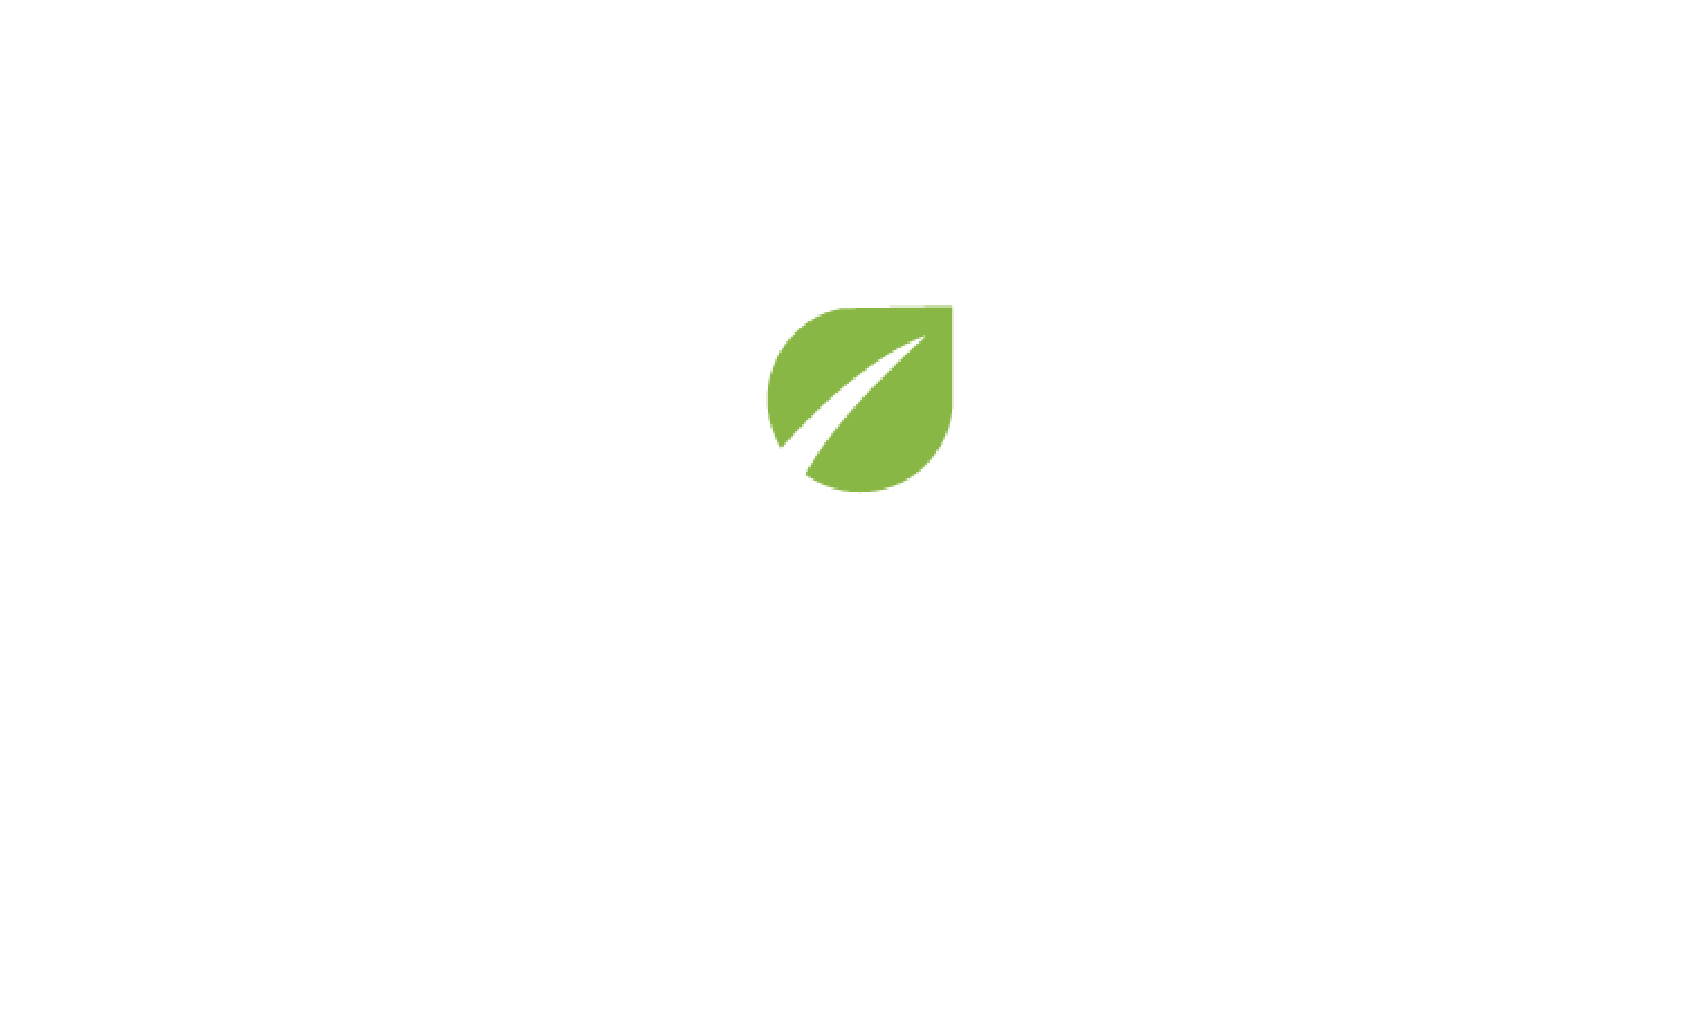 DataPrivacy@2x.png